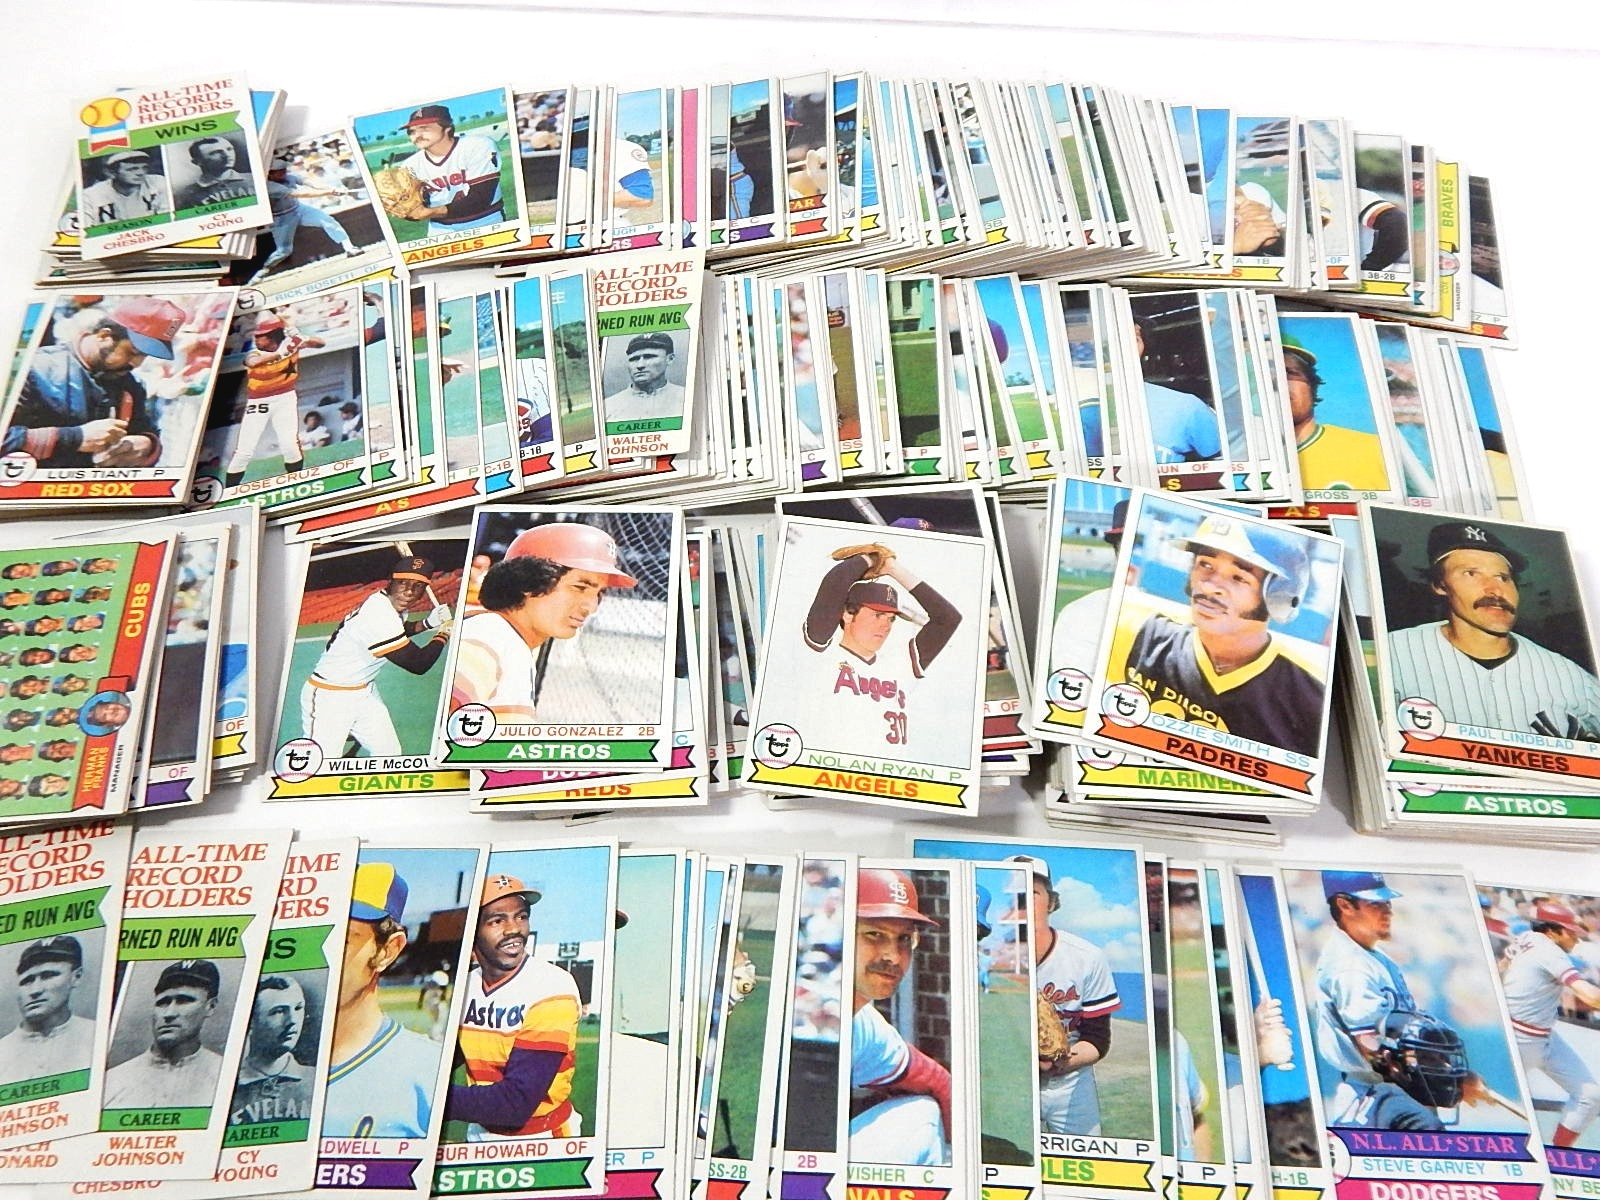 1979 Topps Baseball Cards with N. Ryan, Ozzie Smith Rookie, Bench - Over 300 Ct.